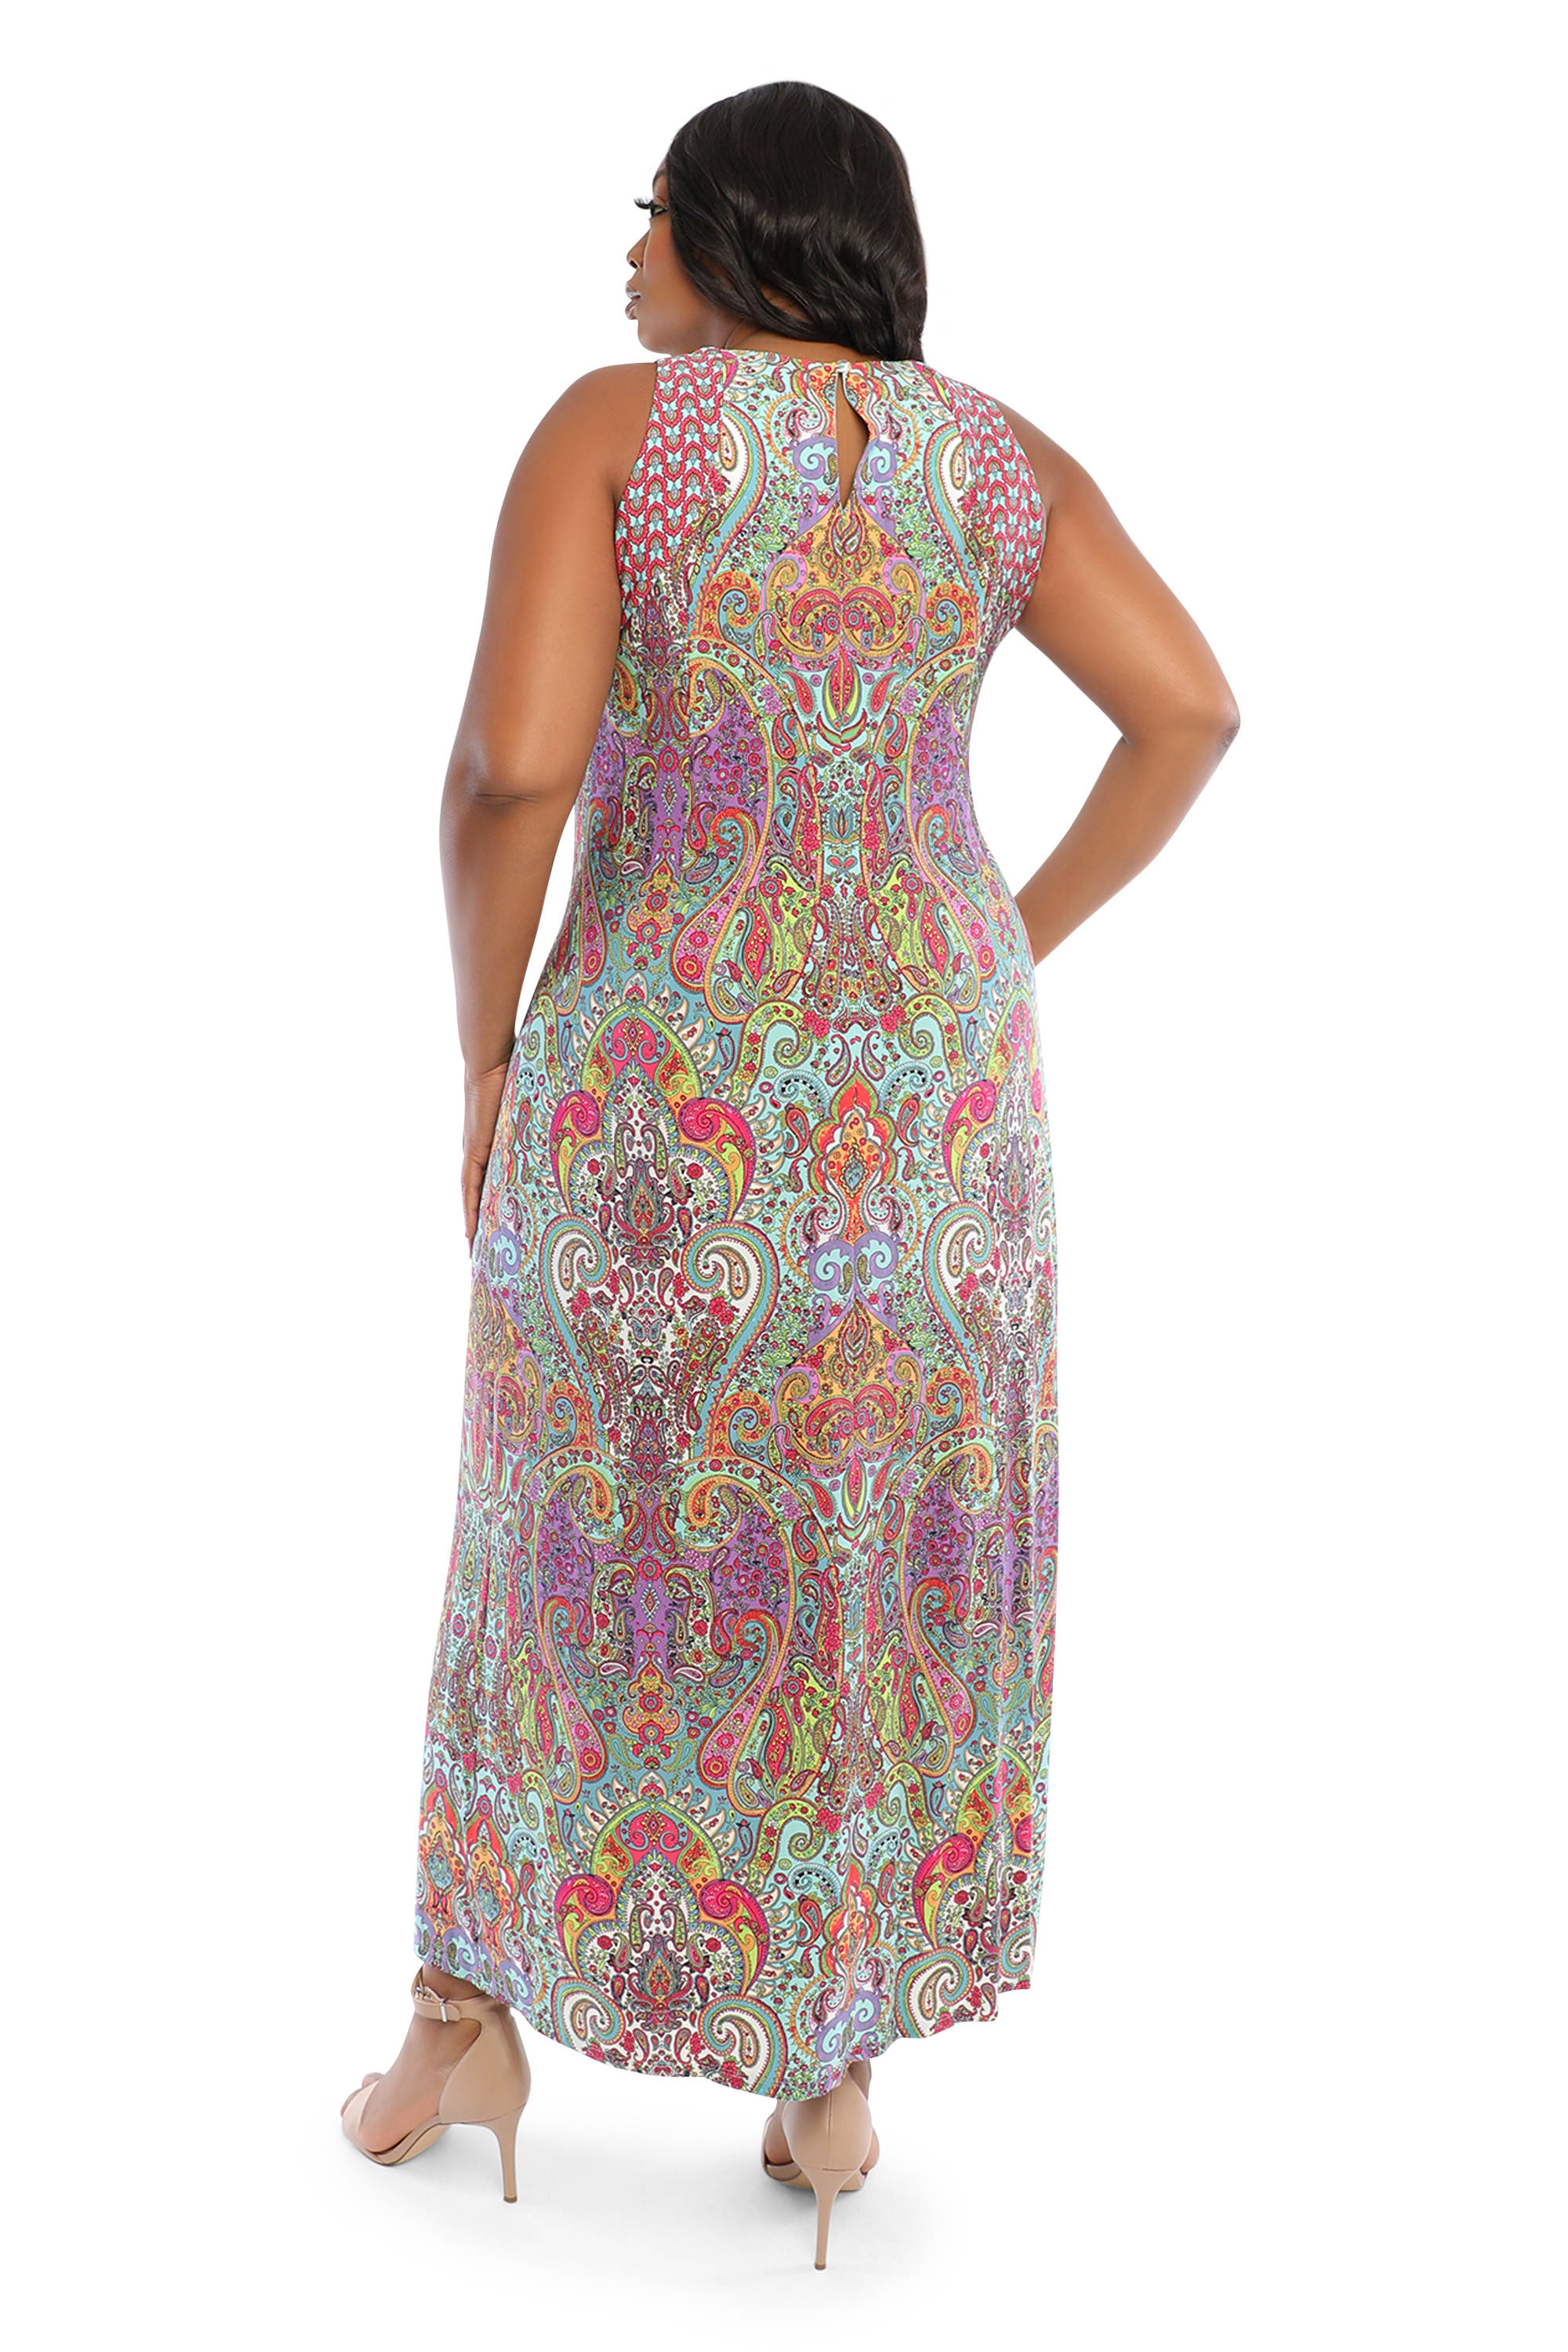 Scroll Maxi Slit Dress - Multi - Back